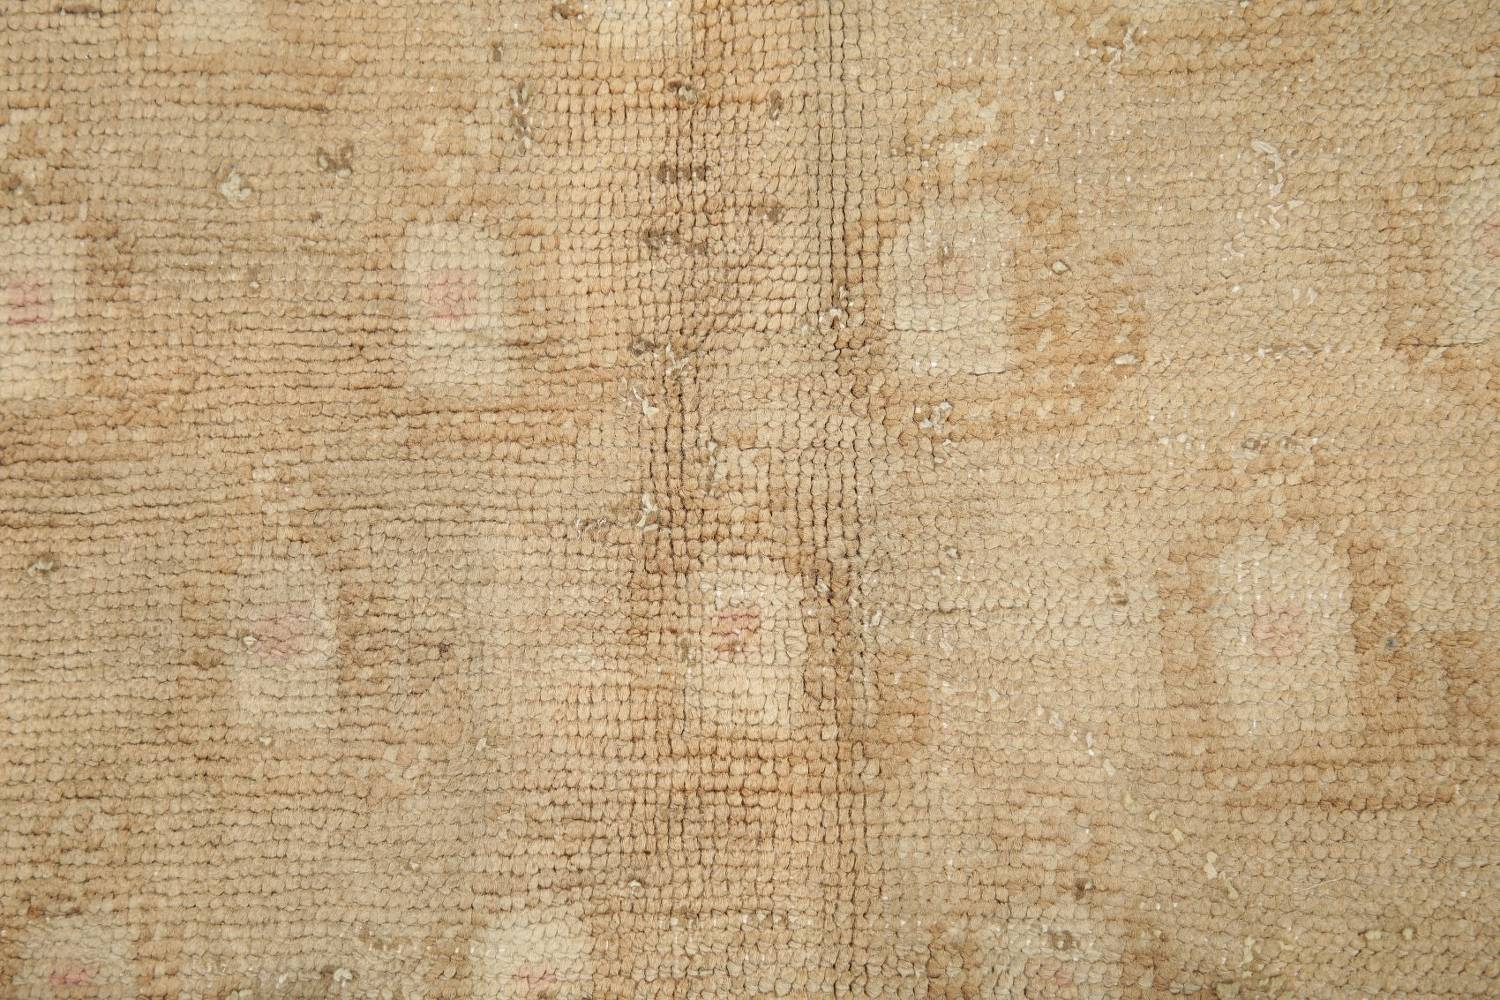 Antique Muted Gold Distressed Sarouk Persian Wool Rug 5x8 image 9